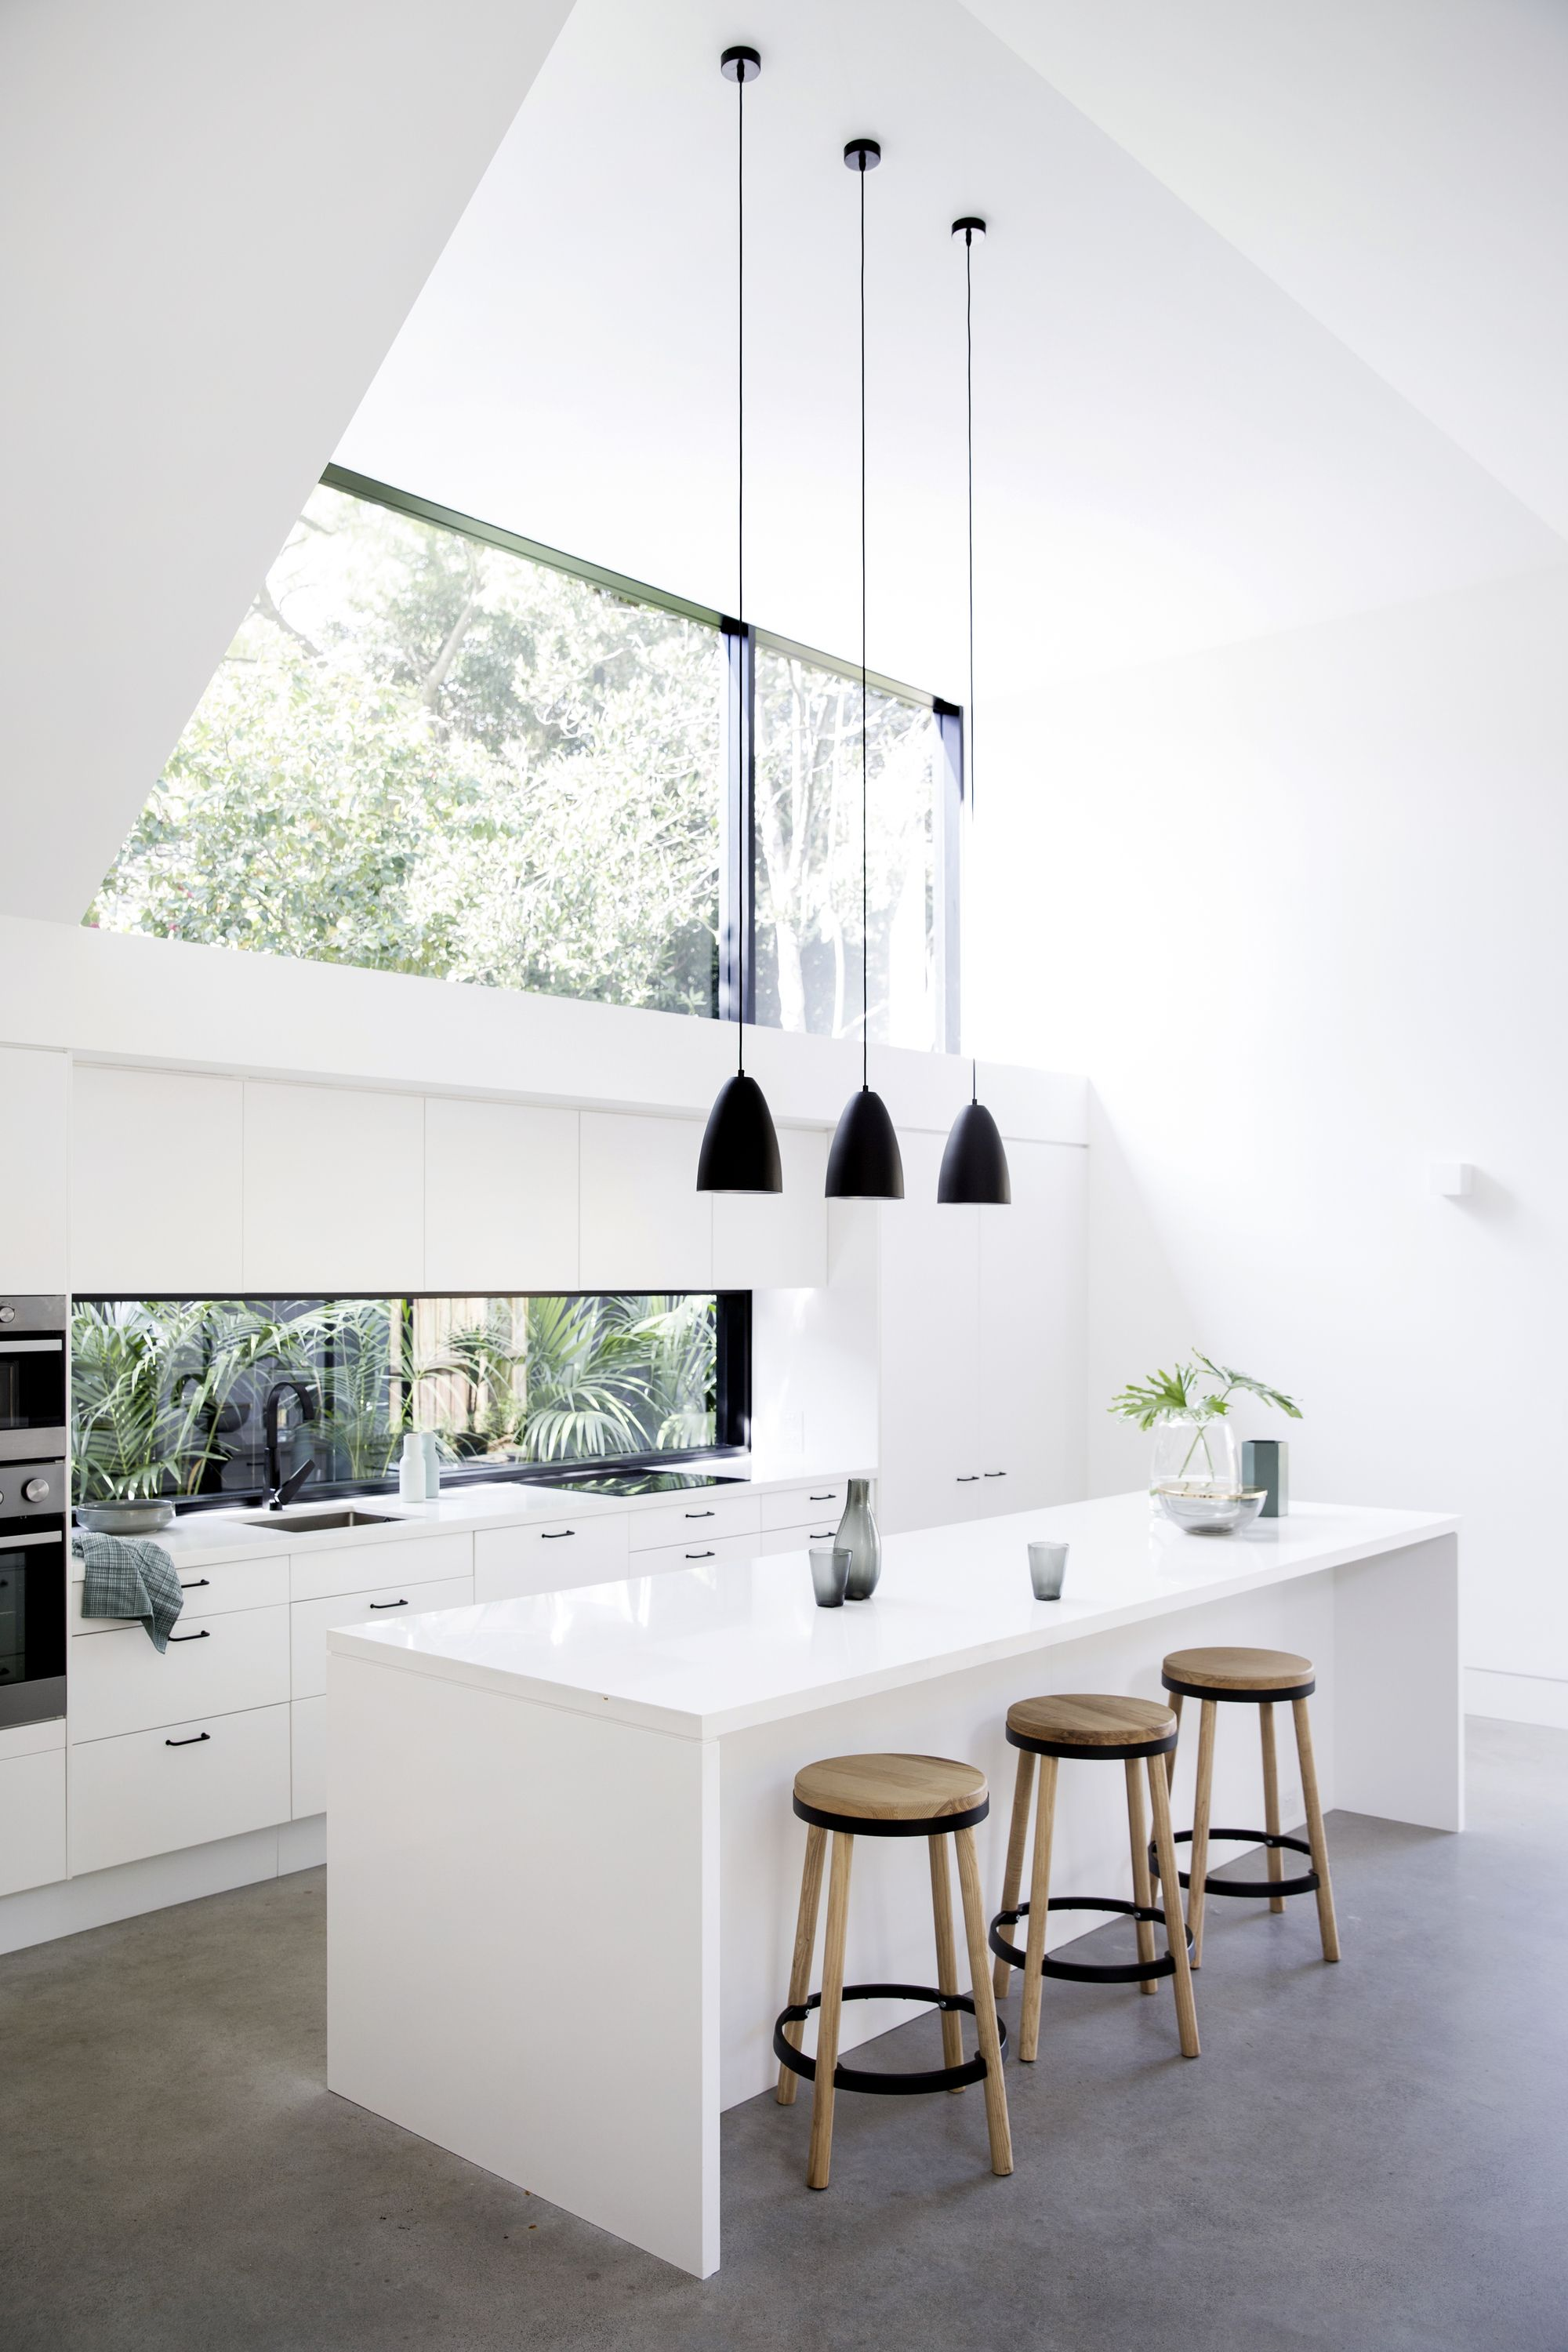 Gallery of allen key house architect prineas also kitchen designed by sims hilditch for the cotswold country rh pinterest